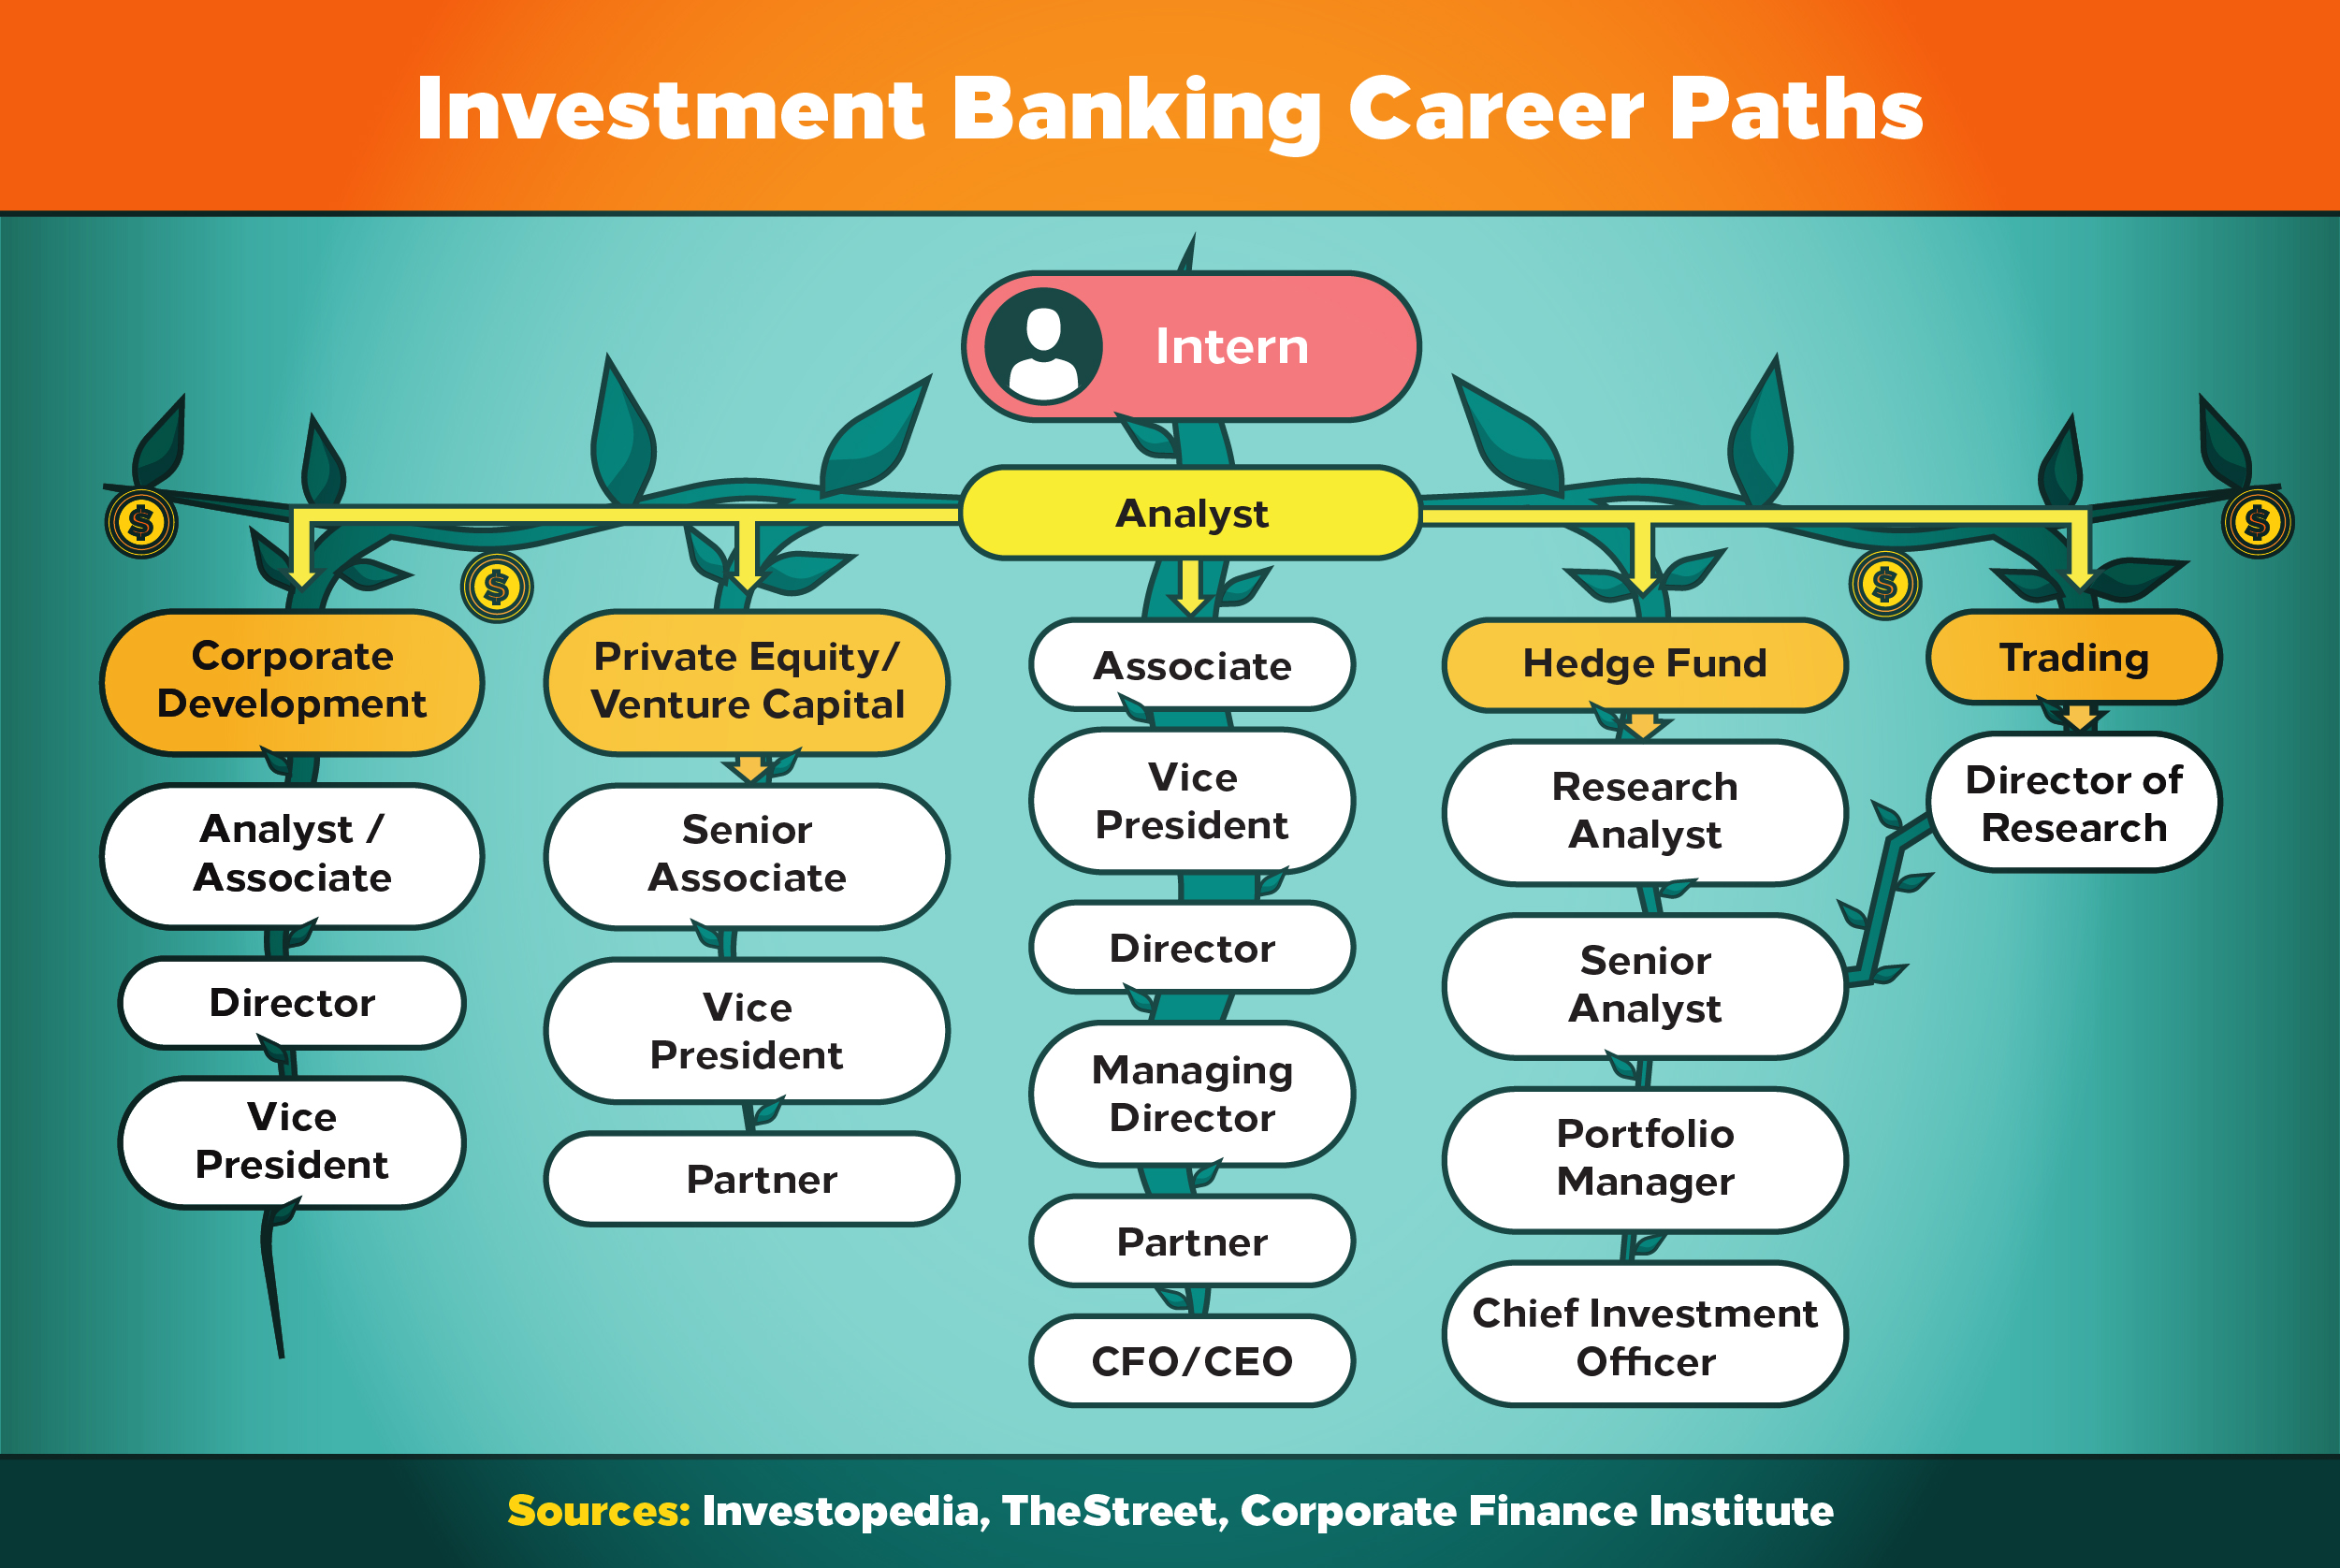 Investment banking career paths include analyst, private equity, hedge fund management, and trading.